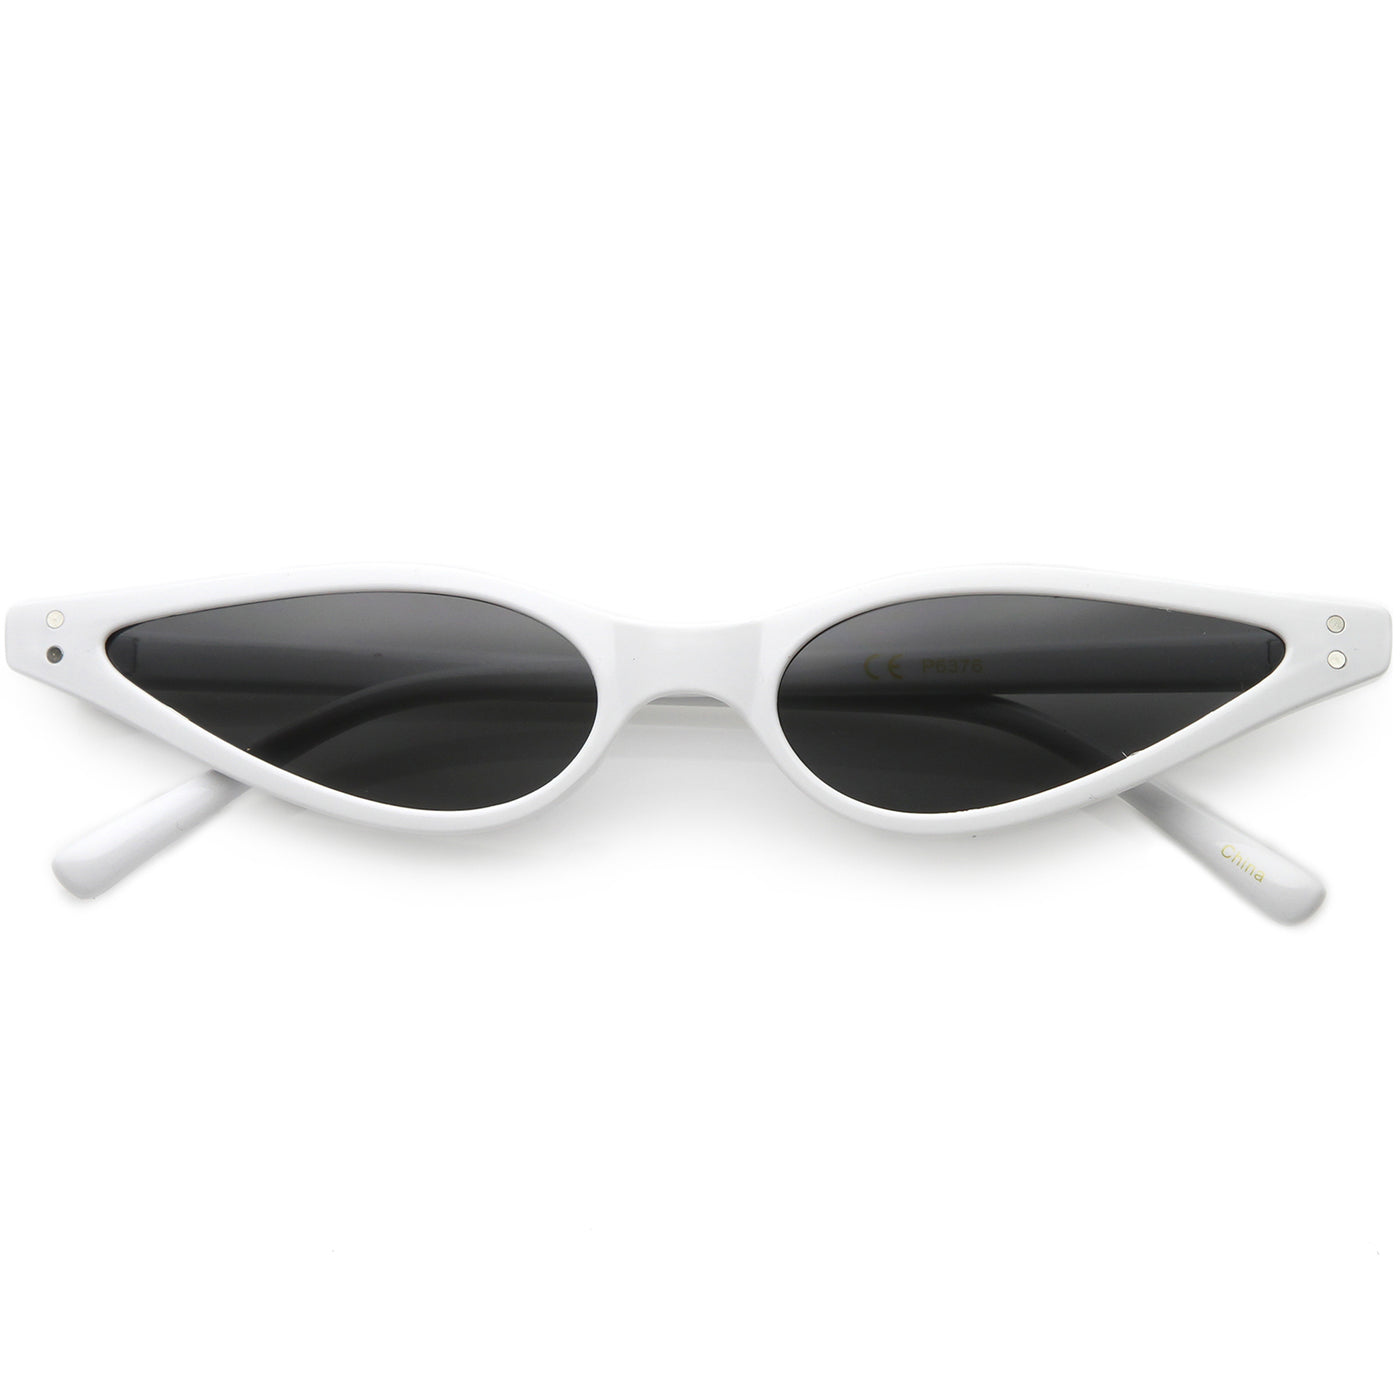 2dece104395 Extreme Thin Cat Eye Sunglasses Neutral Colored Flat Lens 53mm